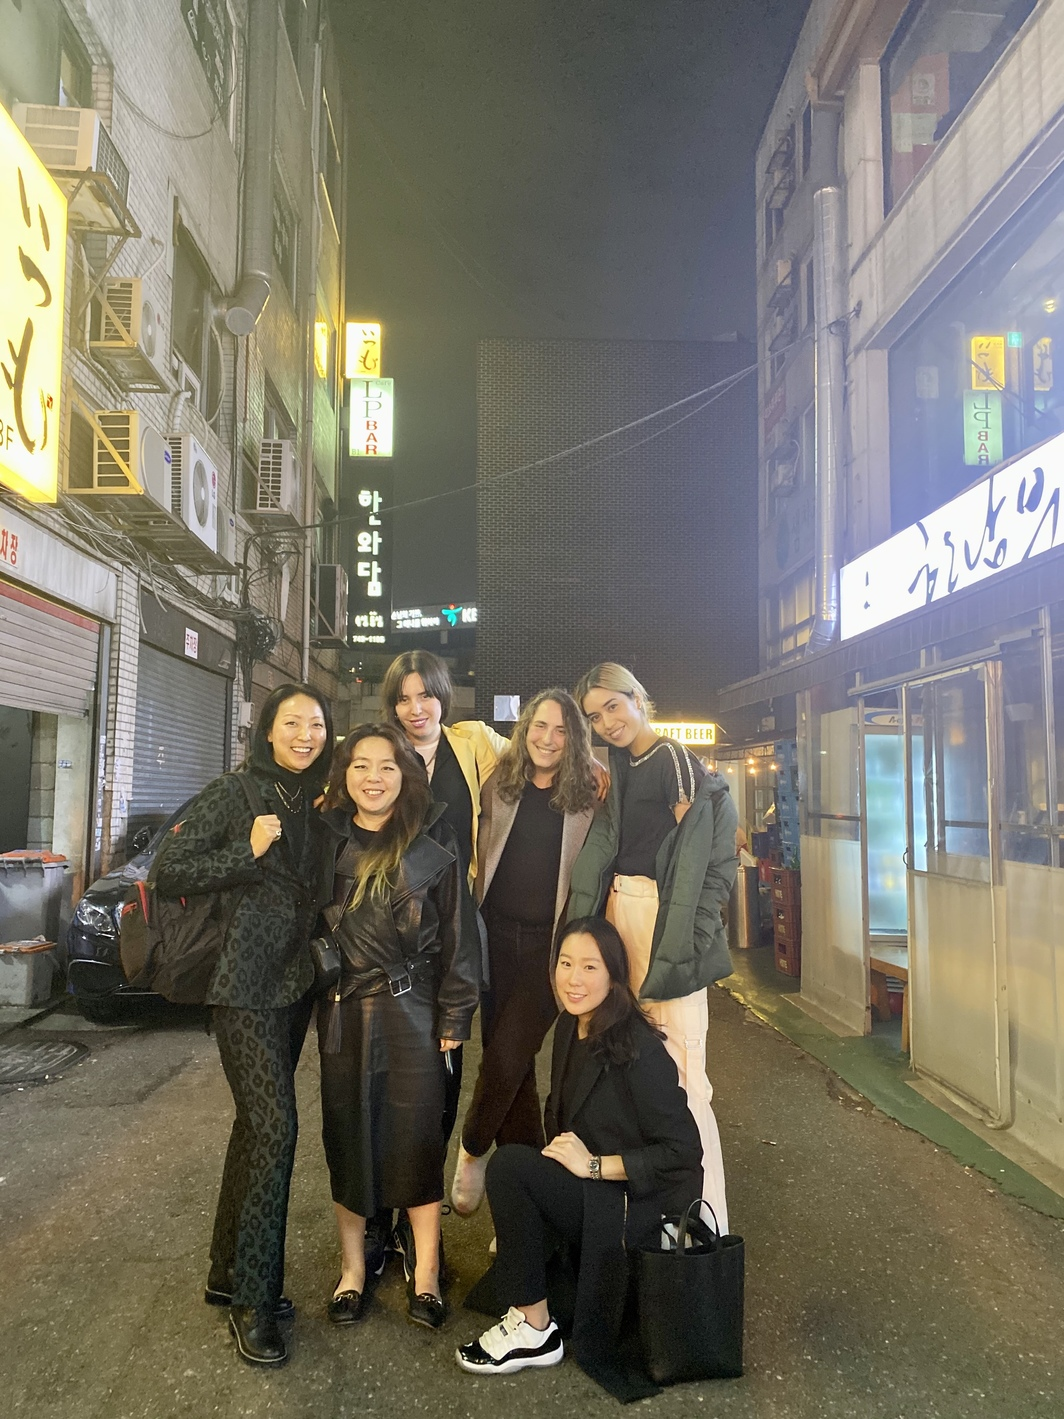 Esther Kim Varet, owner of Various Small Fires; artist Nikki S. Lee; writer Emily Segal; artist Math Bass; VSF LA director Sara Hantman; VSF Seoul director Somin Jeon.